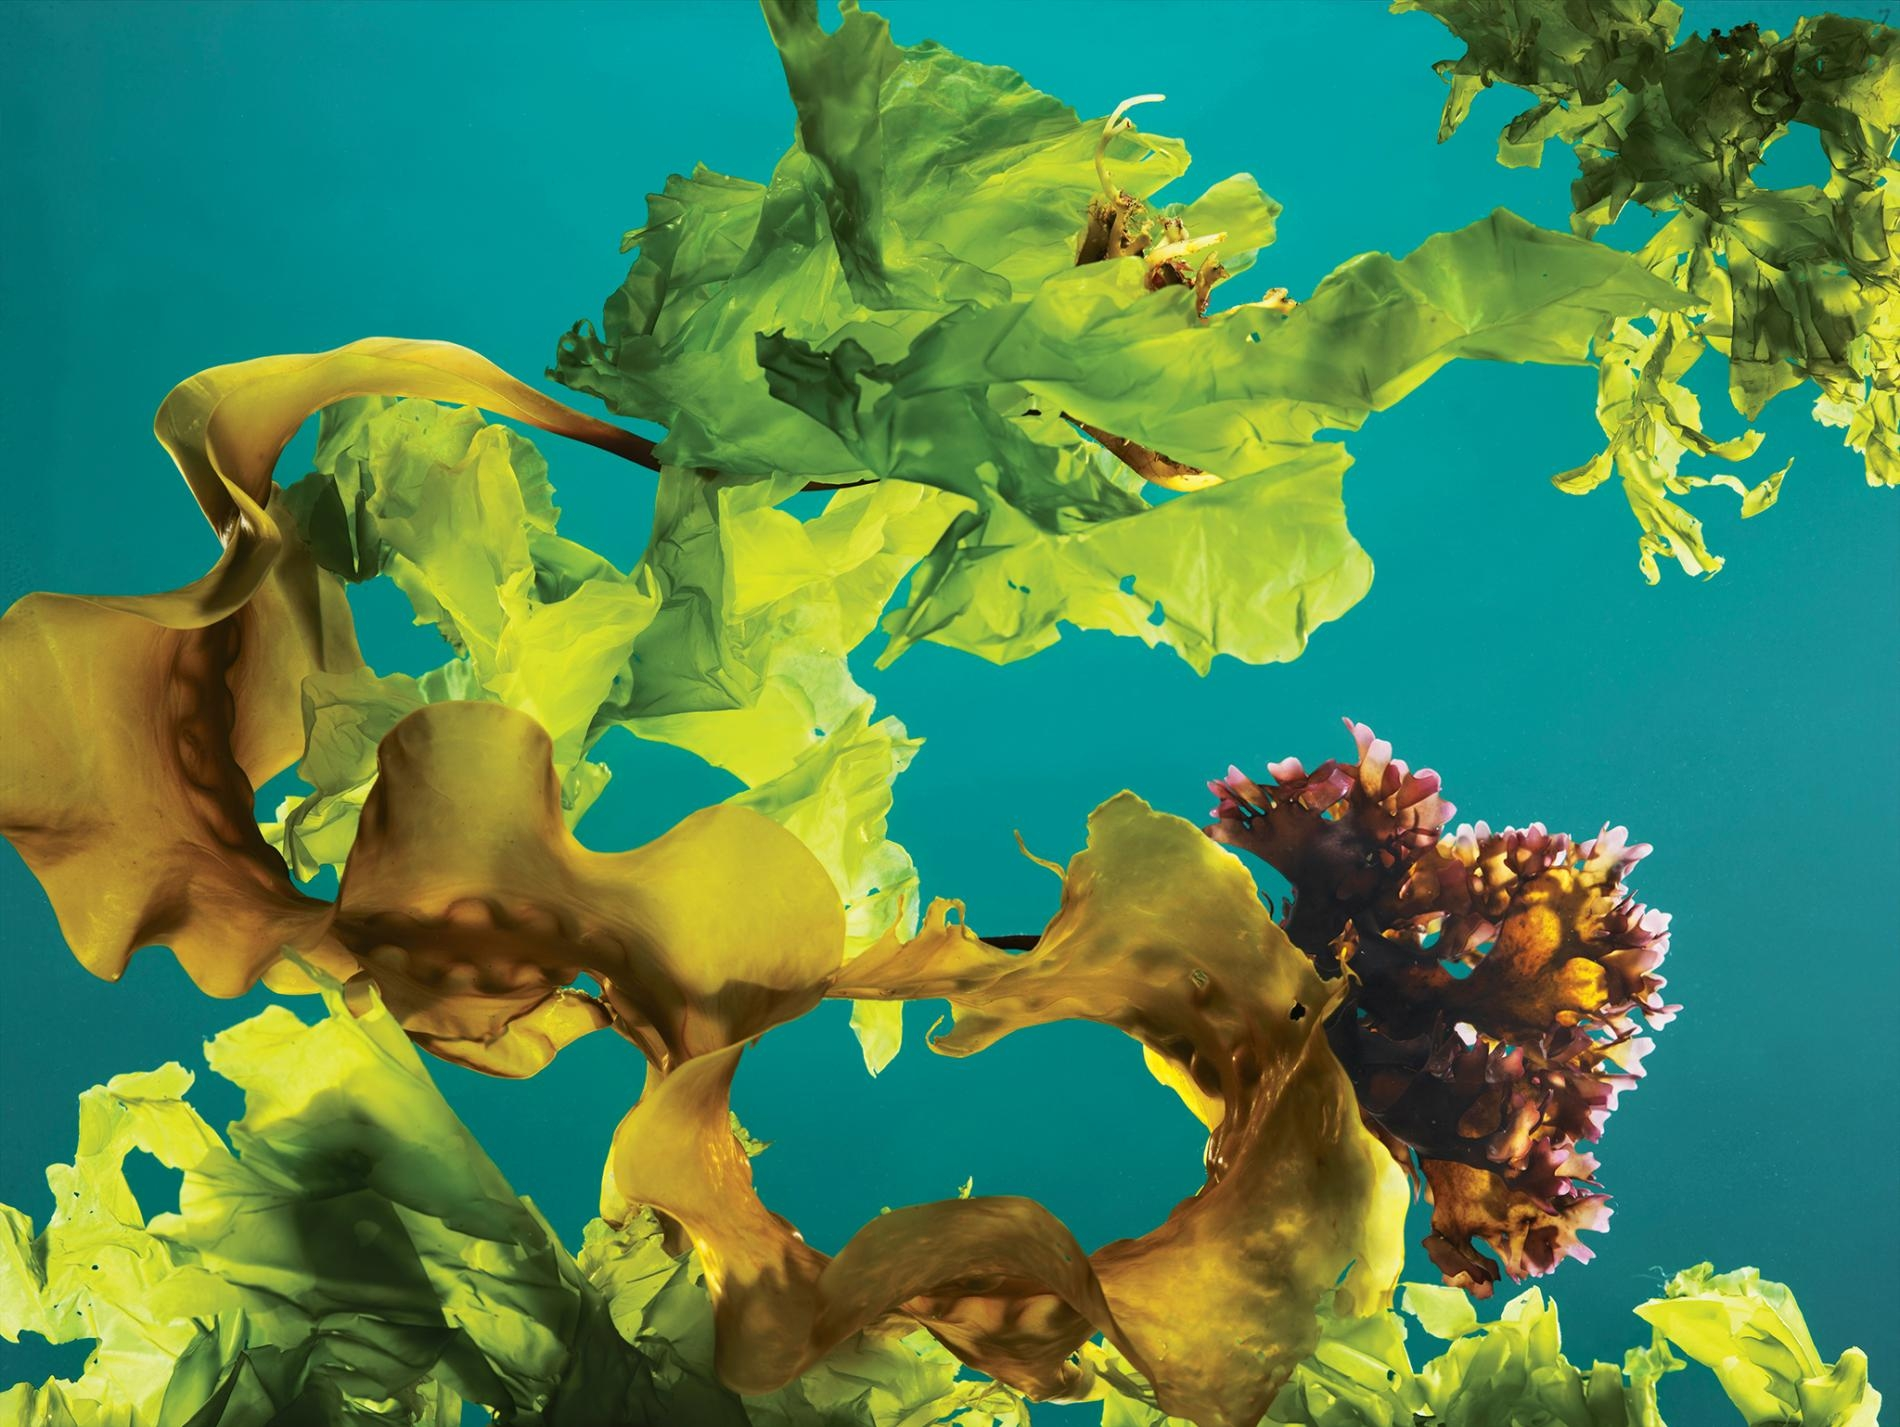 緬因外海採收的海帶 (kelp)、愛爾蘭紅藻(Irish moss)和石蓴(sea lettuce)。PHOTOGRAPH BY REBECCA HALE, NAT GEO IMAGE COLLECTION